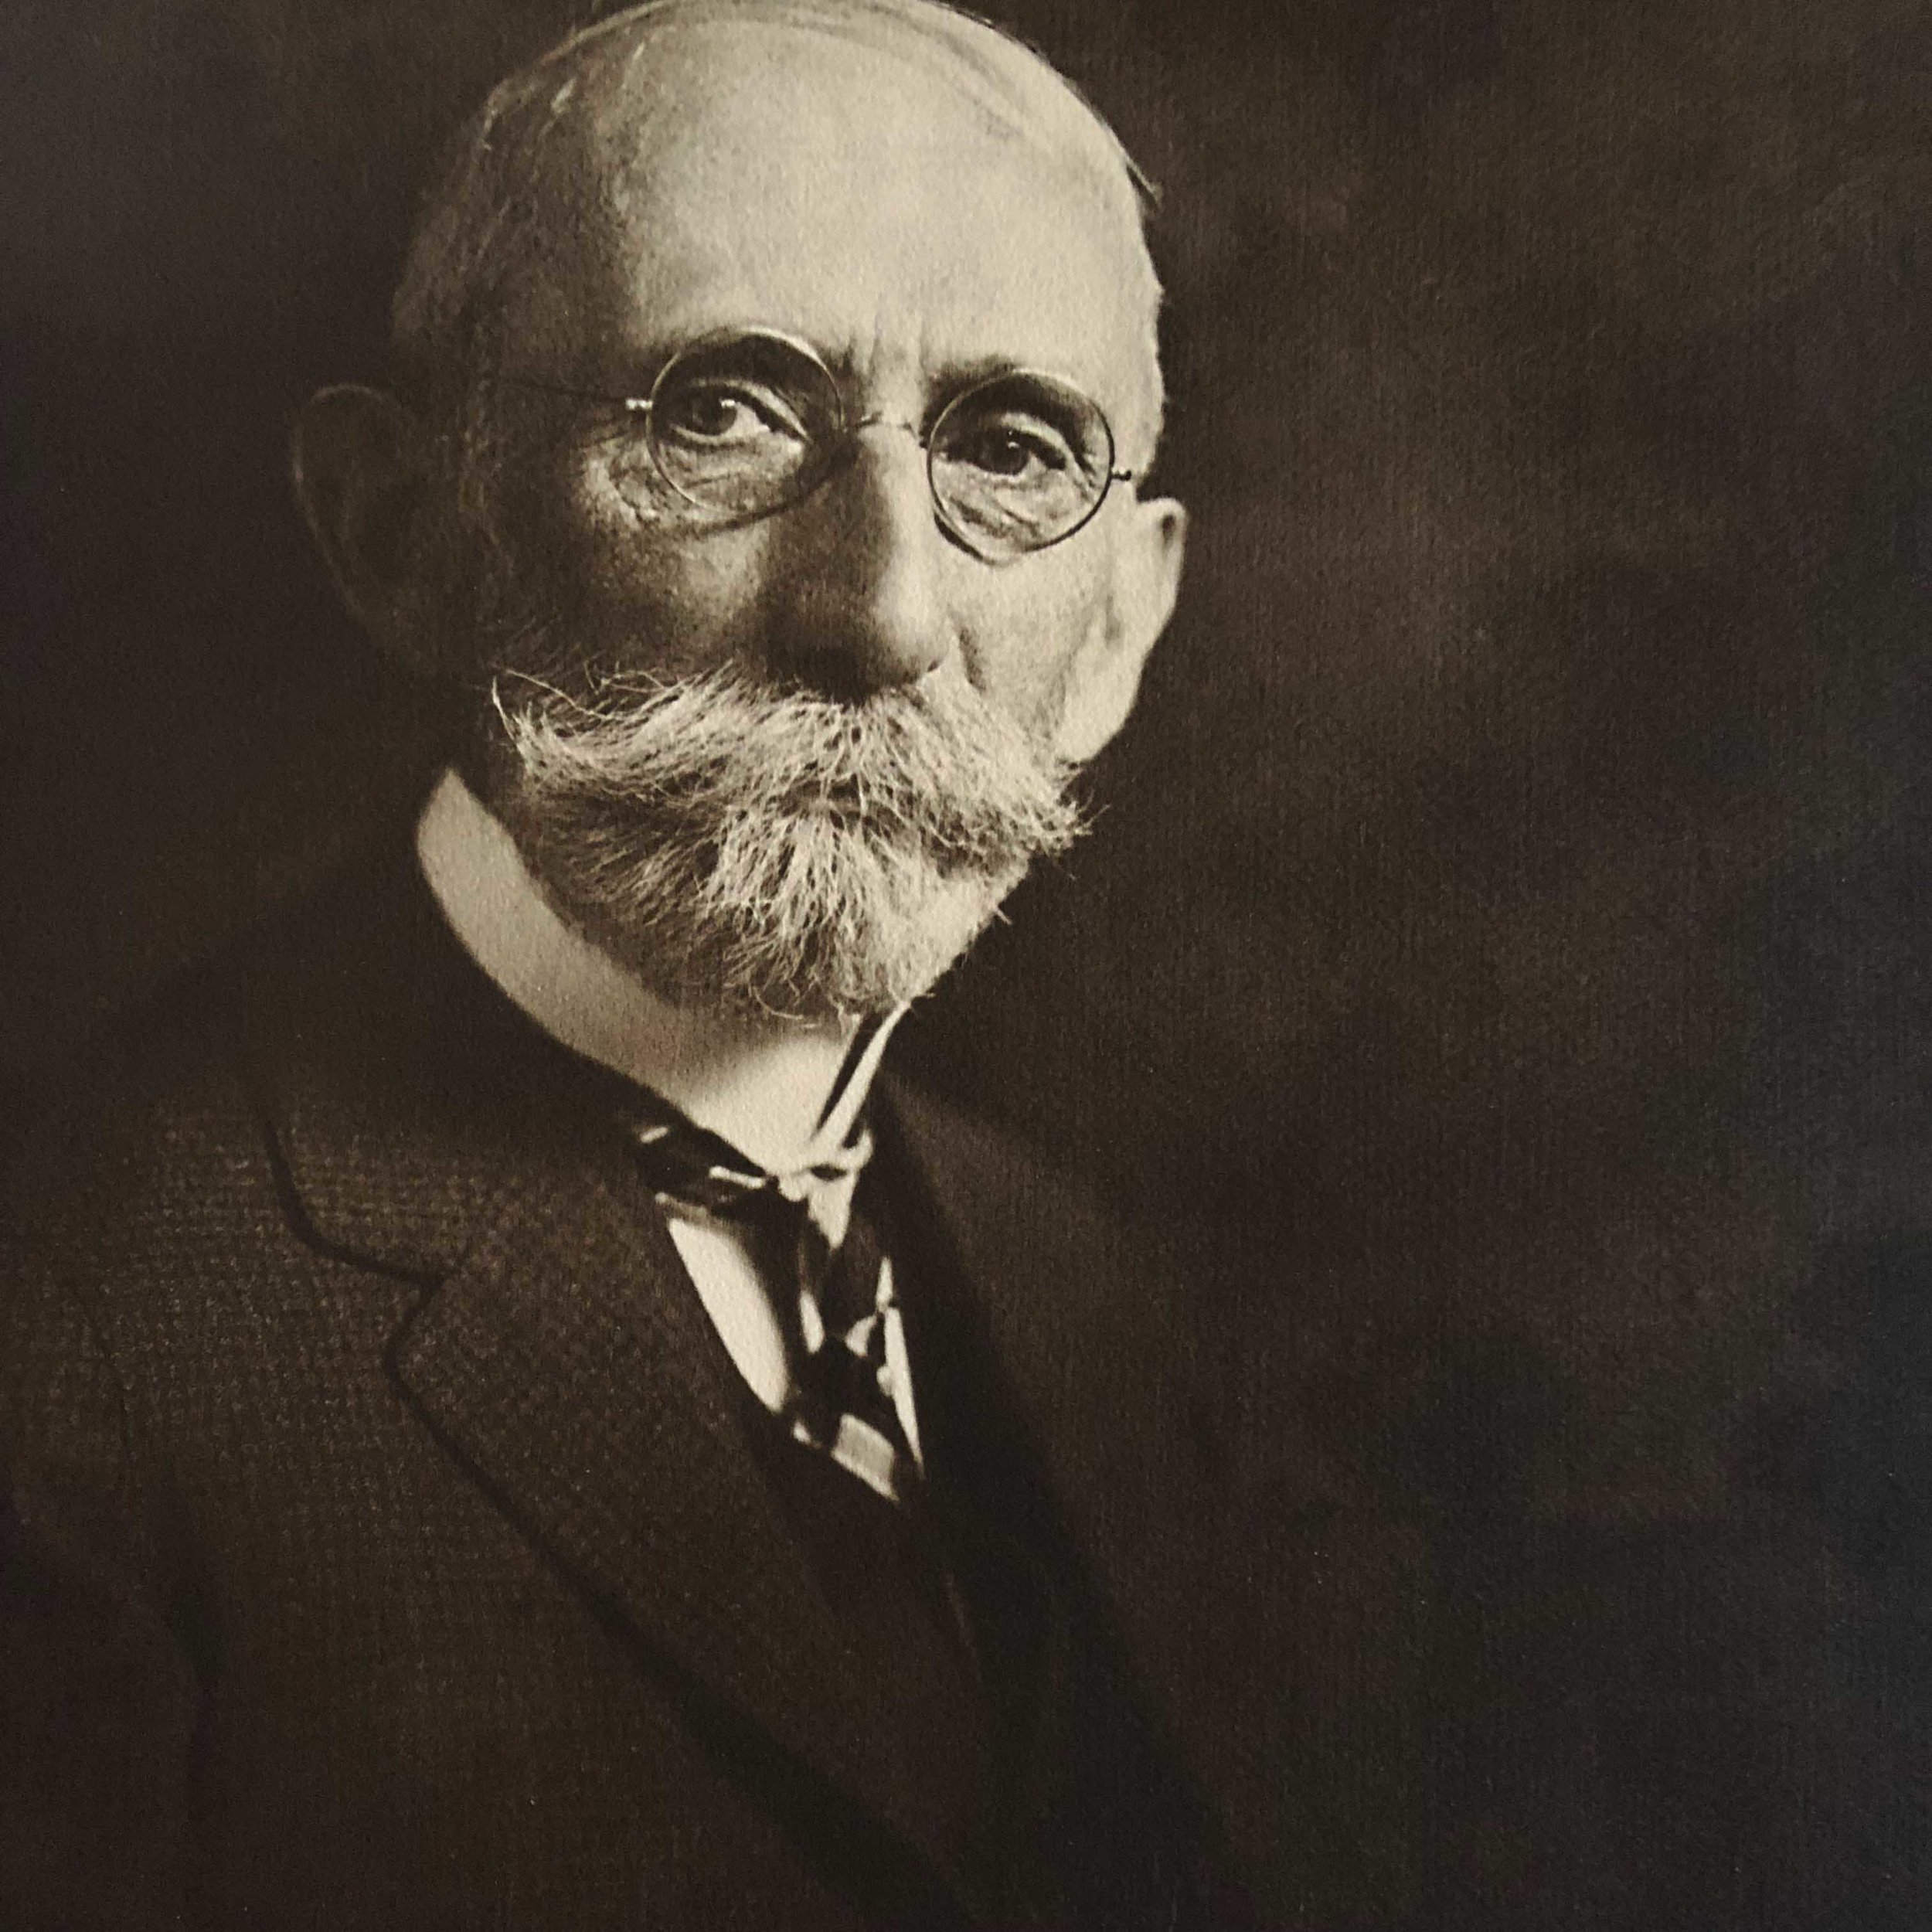 An undated portrait of James Bull